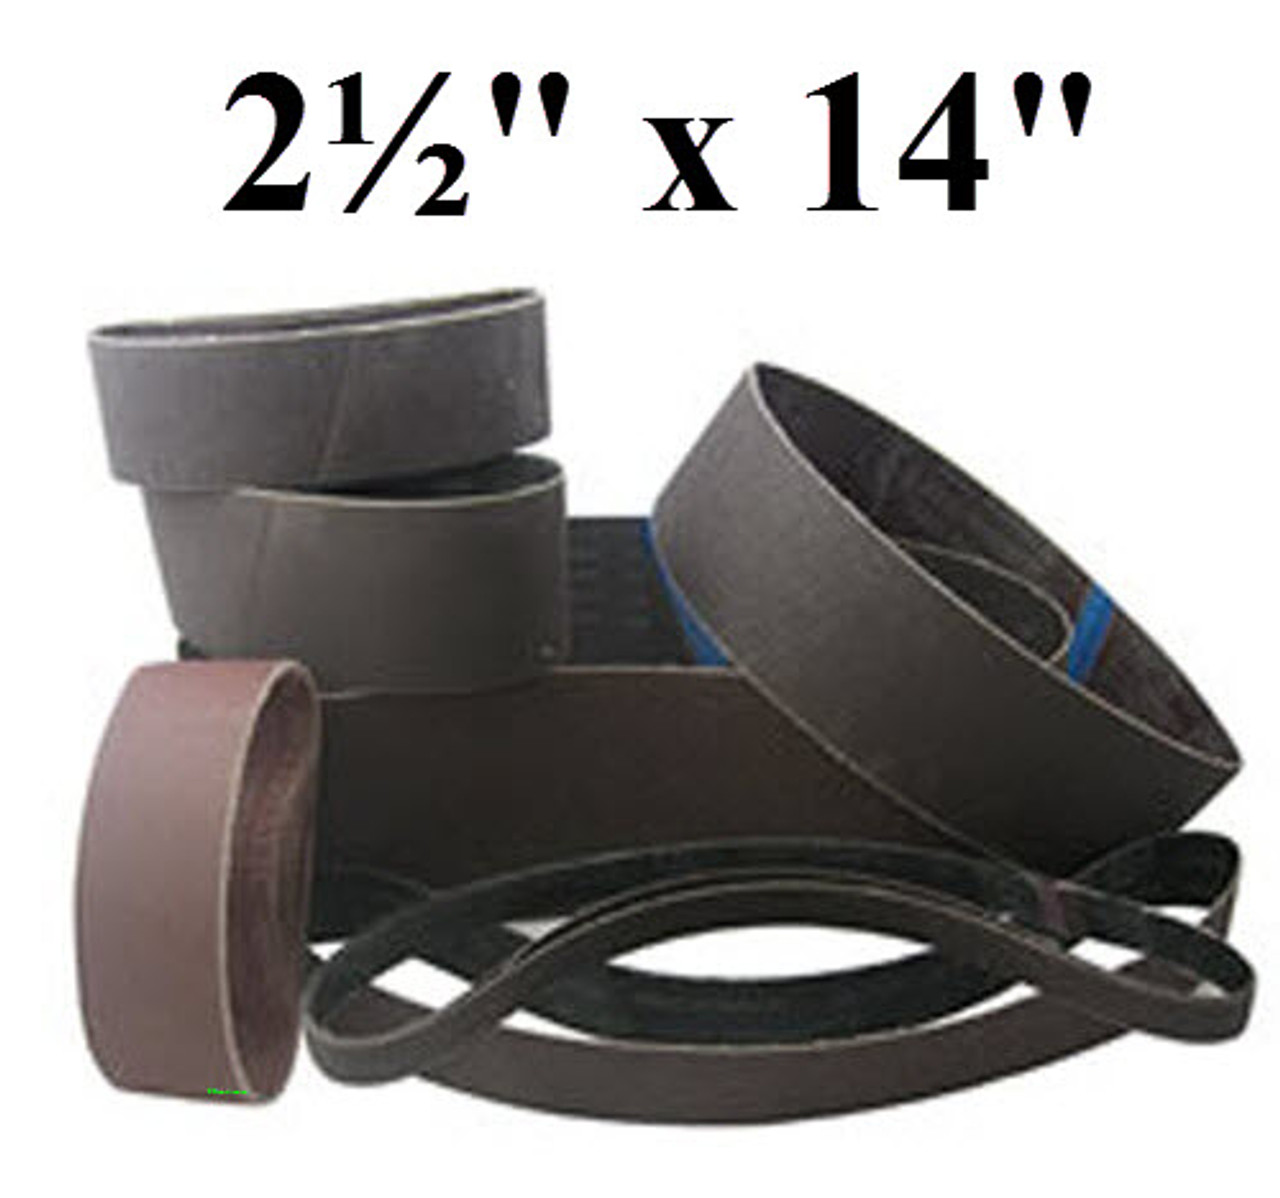 2 1//2 X 60 Inch 180 Grit Silicon Carbide Sanding Belts 6 Pack